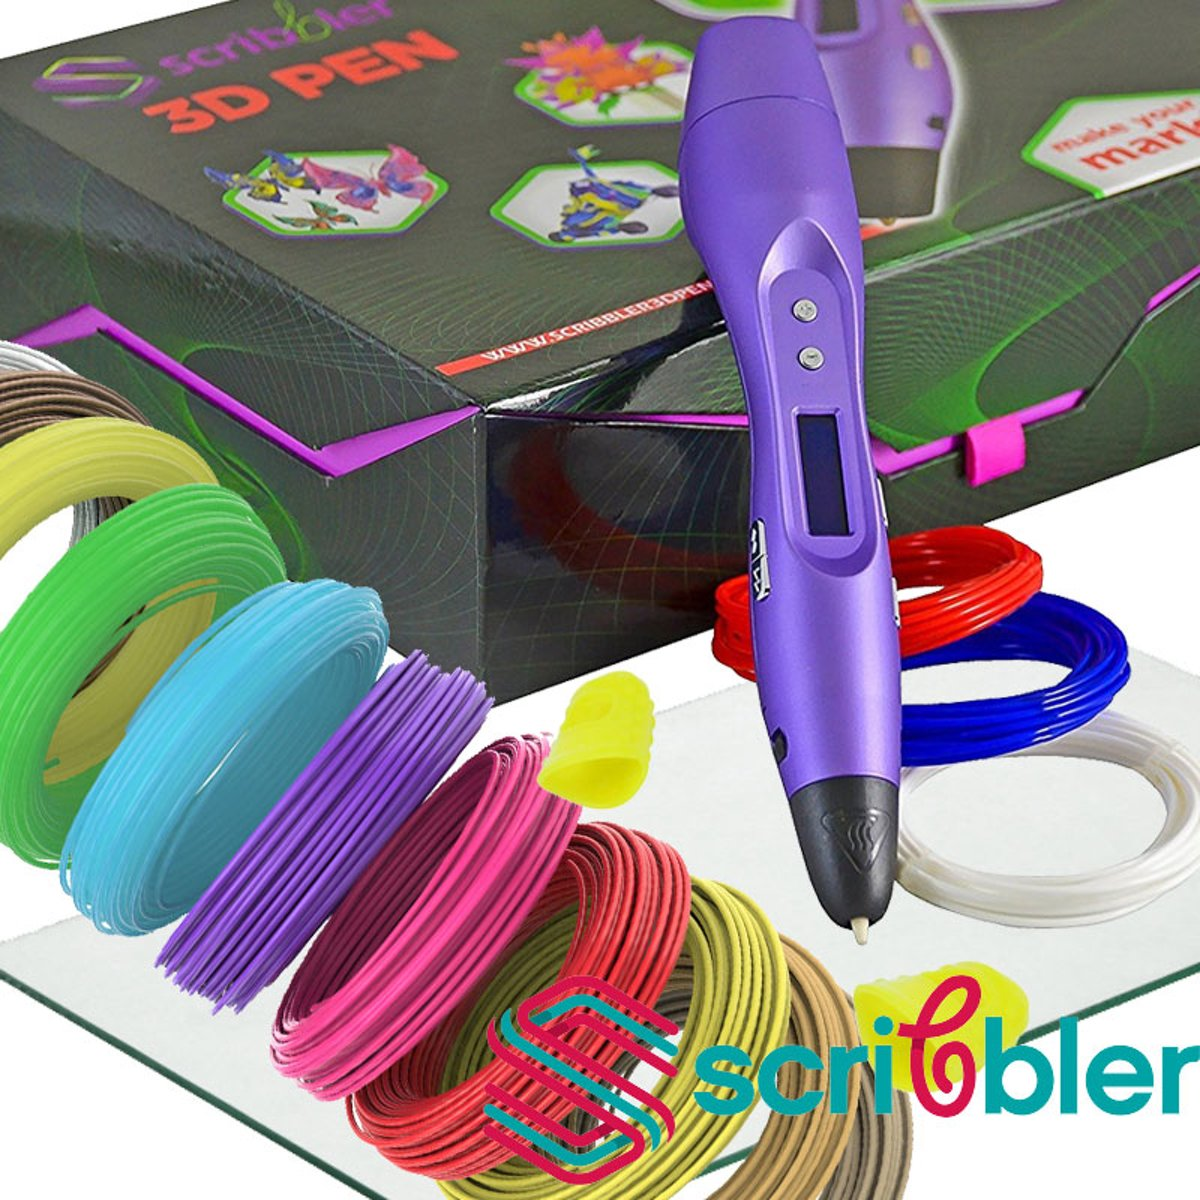 Original Scribbler 3d pen type DUO! 2kleuren of 2x snelheid printen!